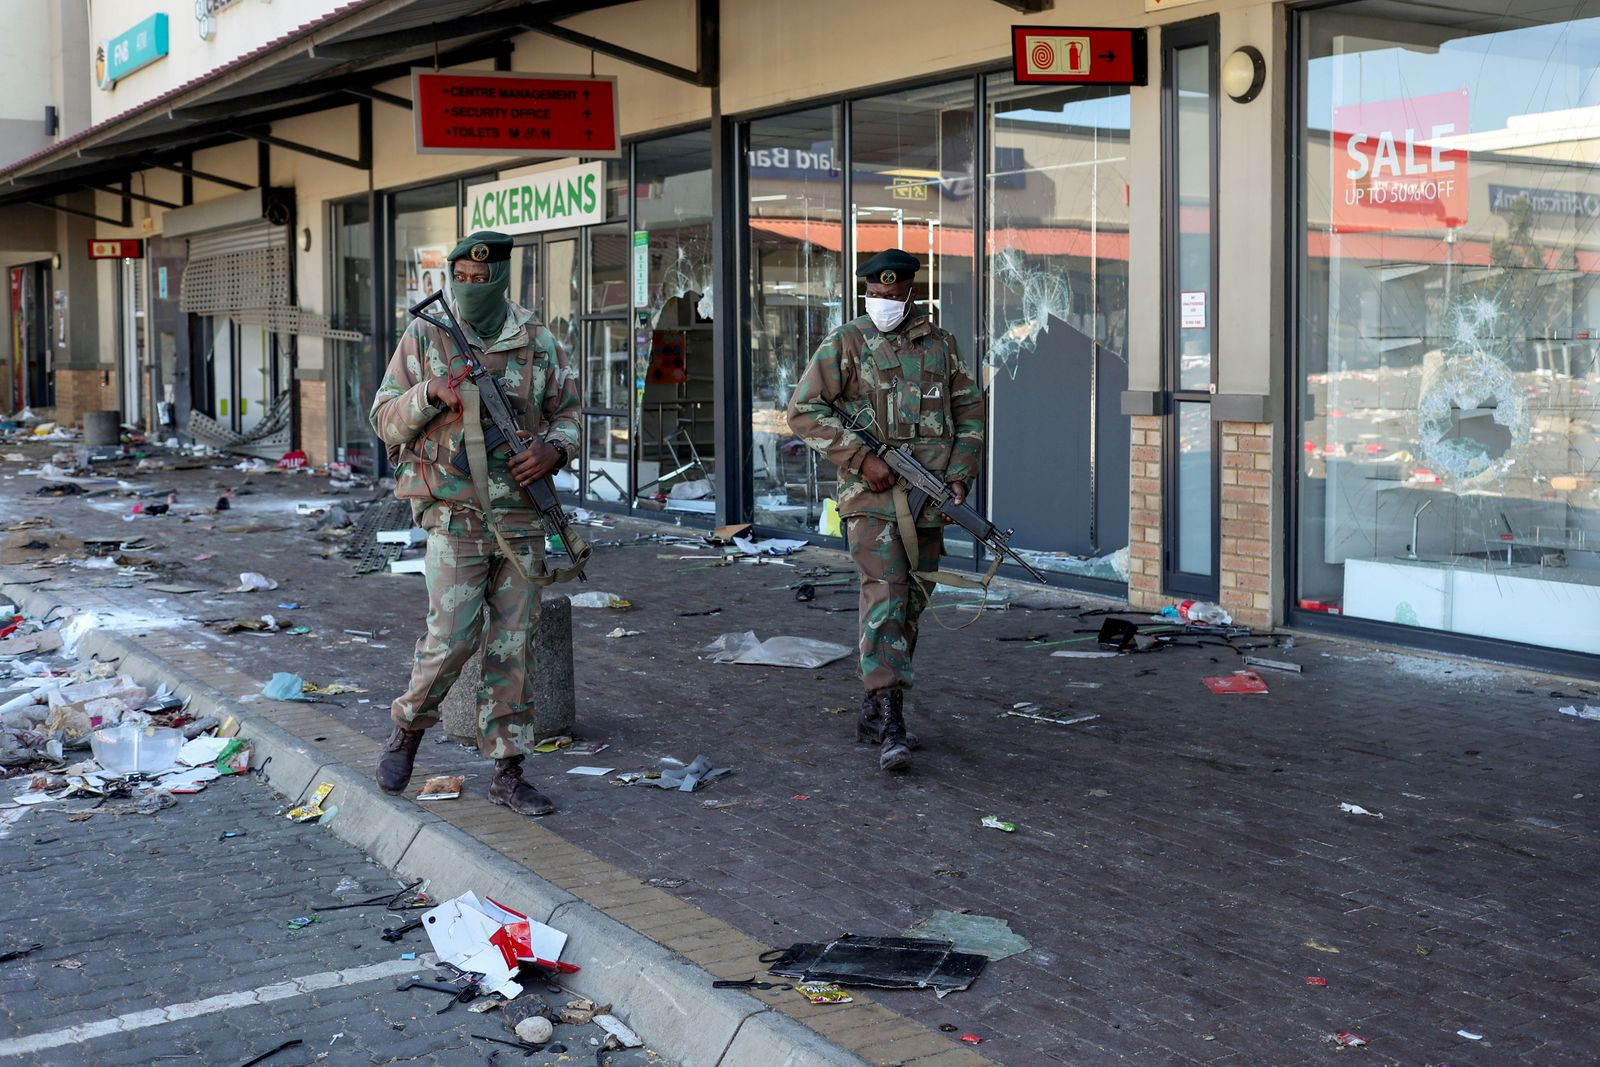 Violence spreads around the country after Zuma jailing, in Soweto